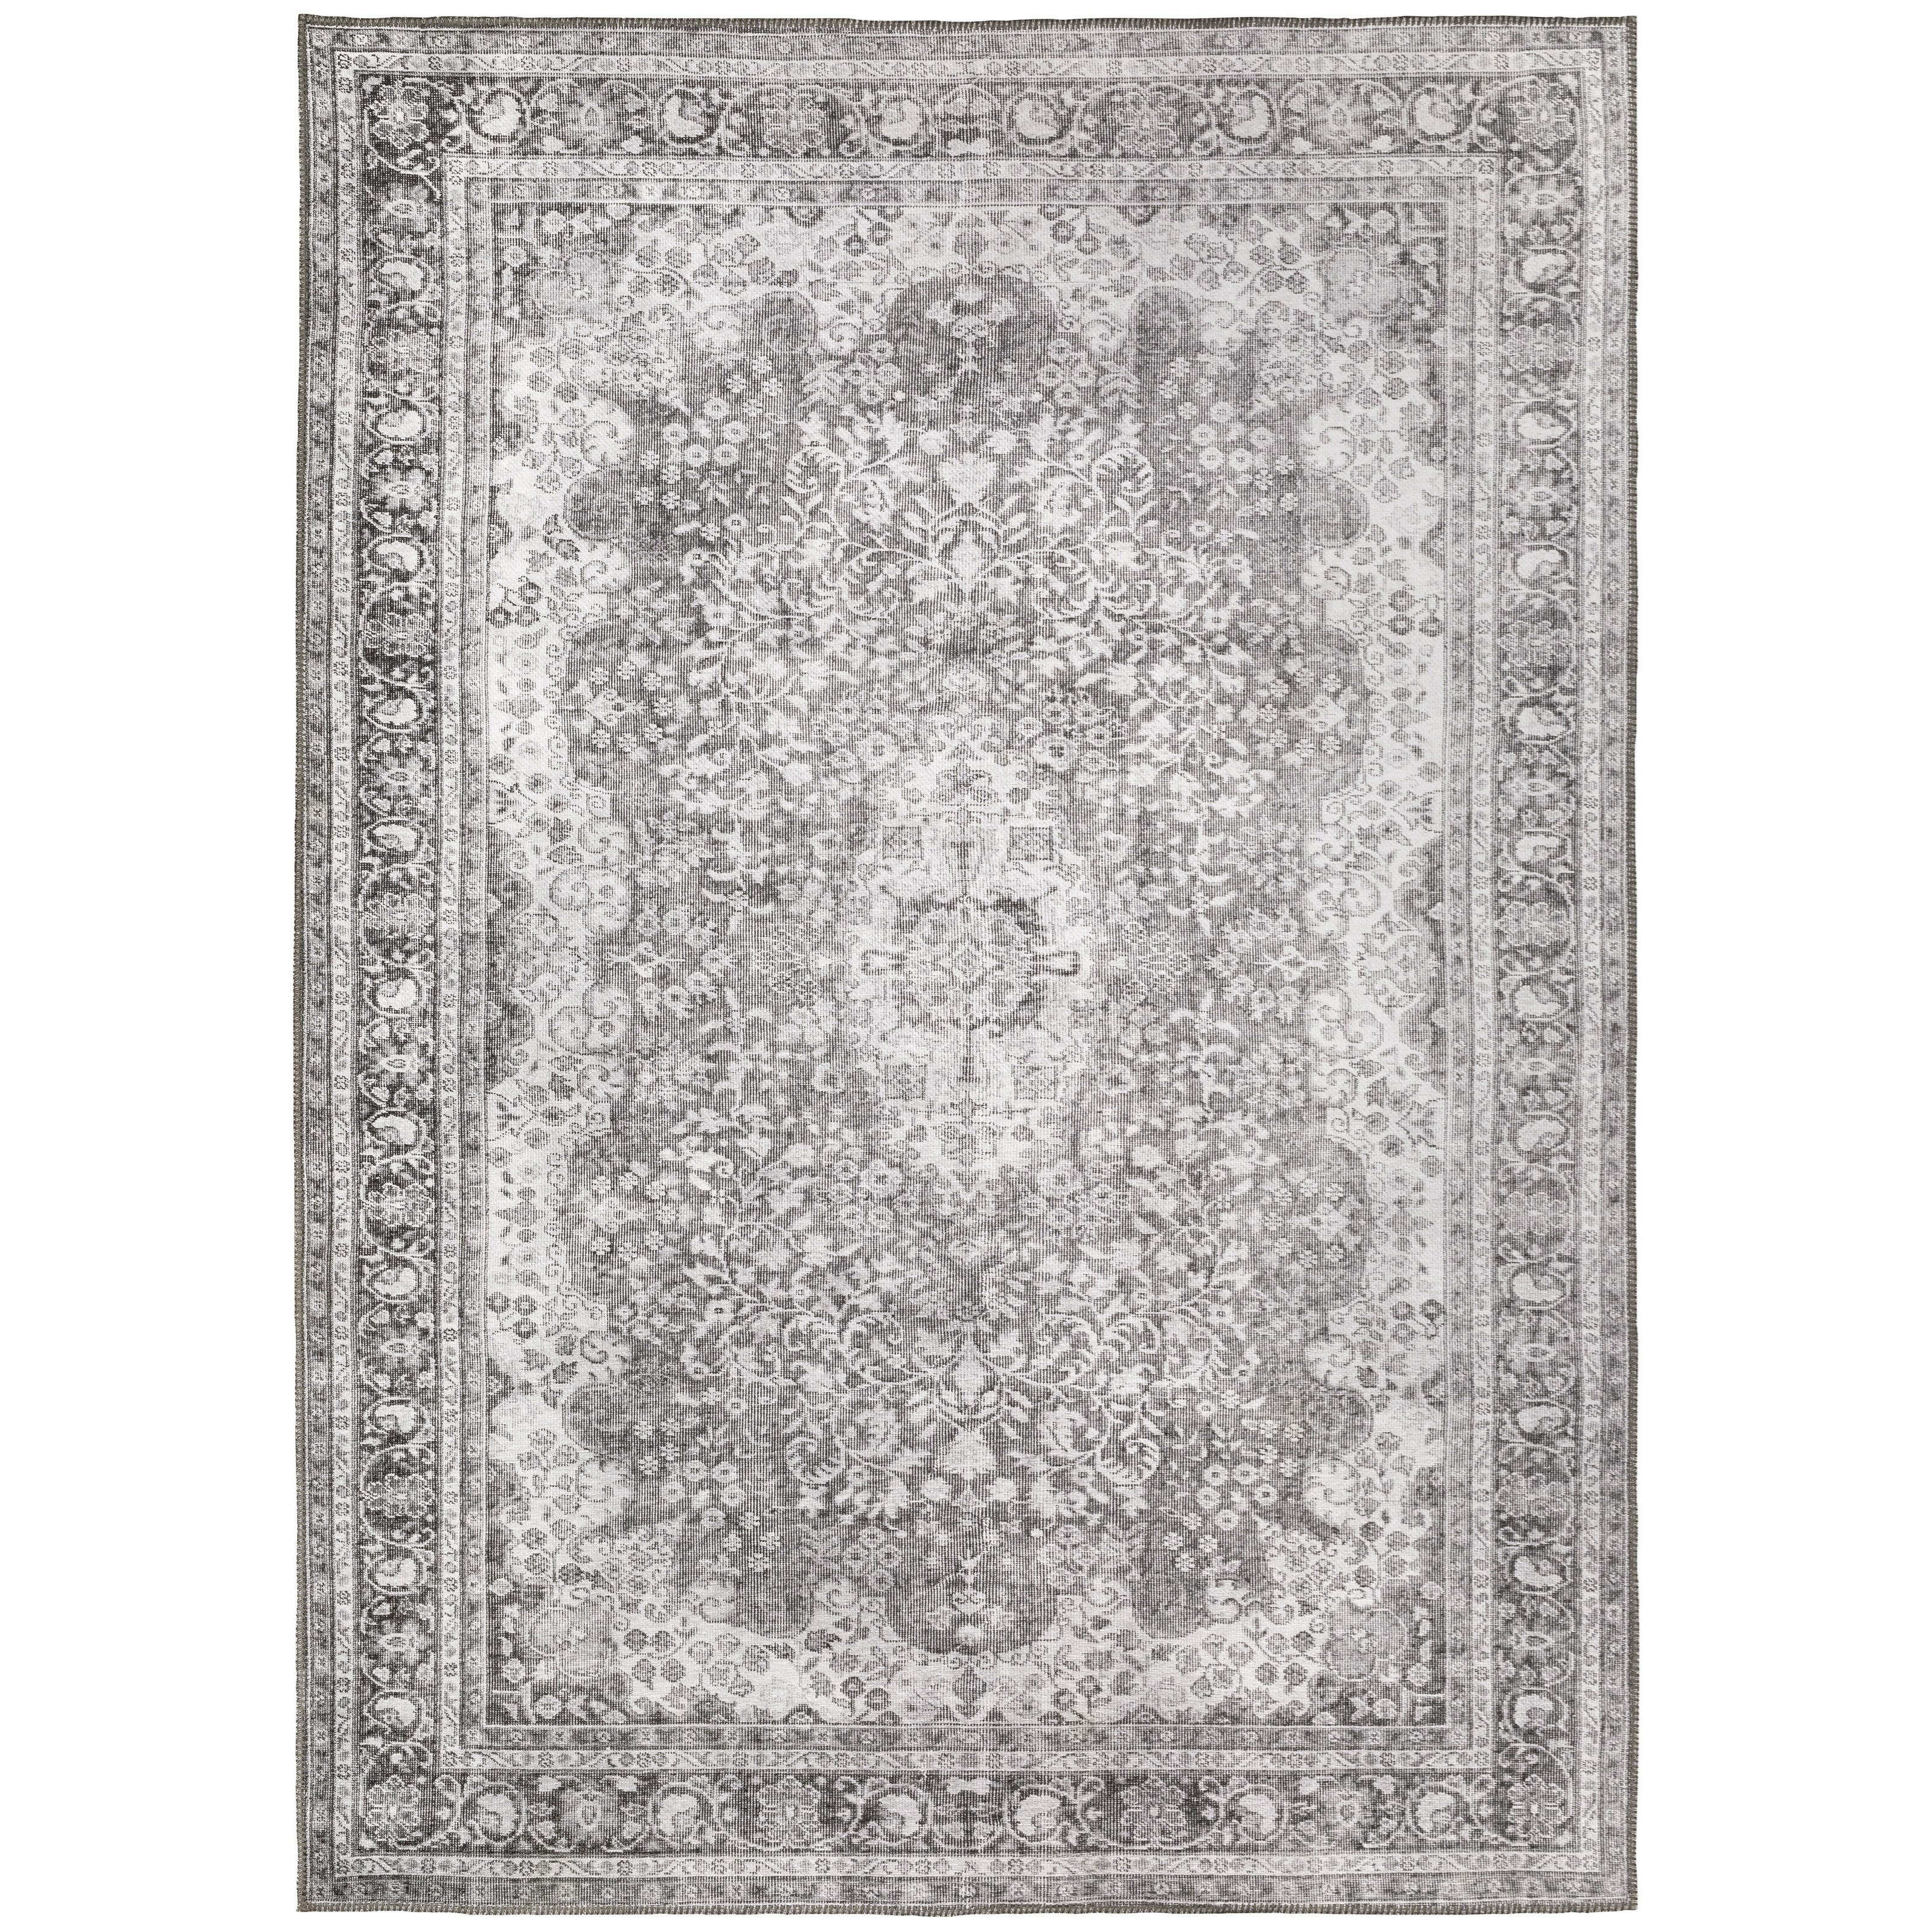 "SOFIA 7' 6"" X  9'11"" Rectangle Rug by Oriental Weavers at Furniture Superstore - Rochester, MN"